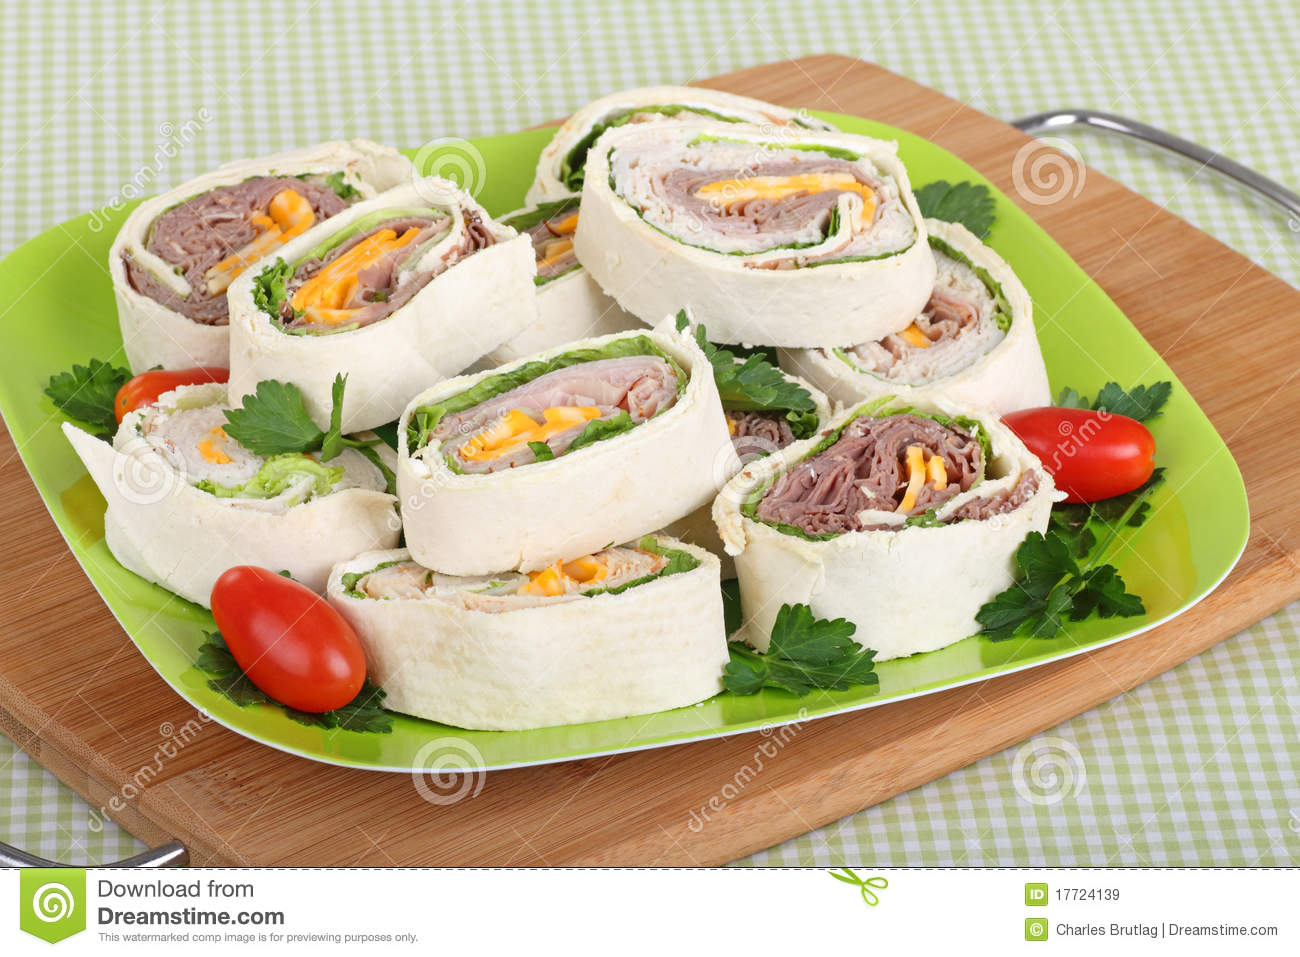 Vegetable And Meat Wraps With Sweet Chilli Sauce Stock Photo ...